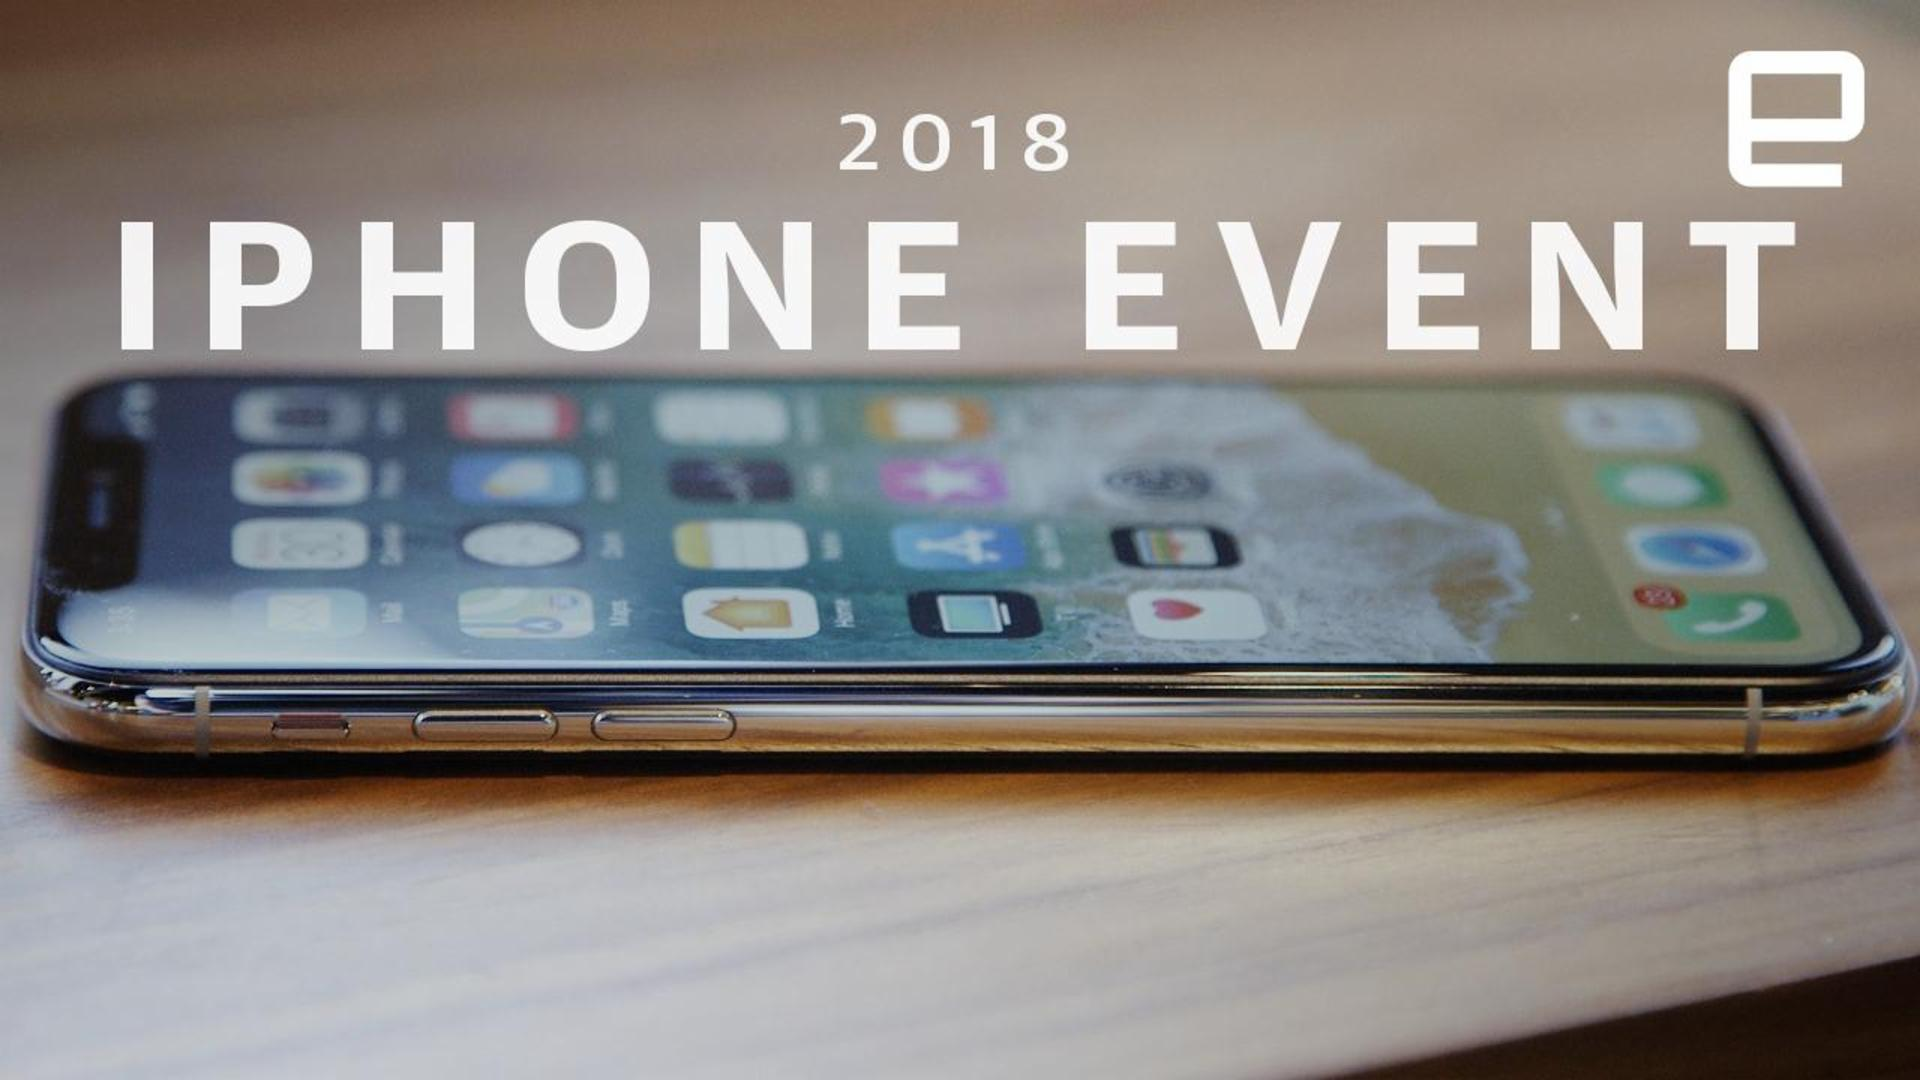 What to expect from Apple's 2018 iPhone event